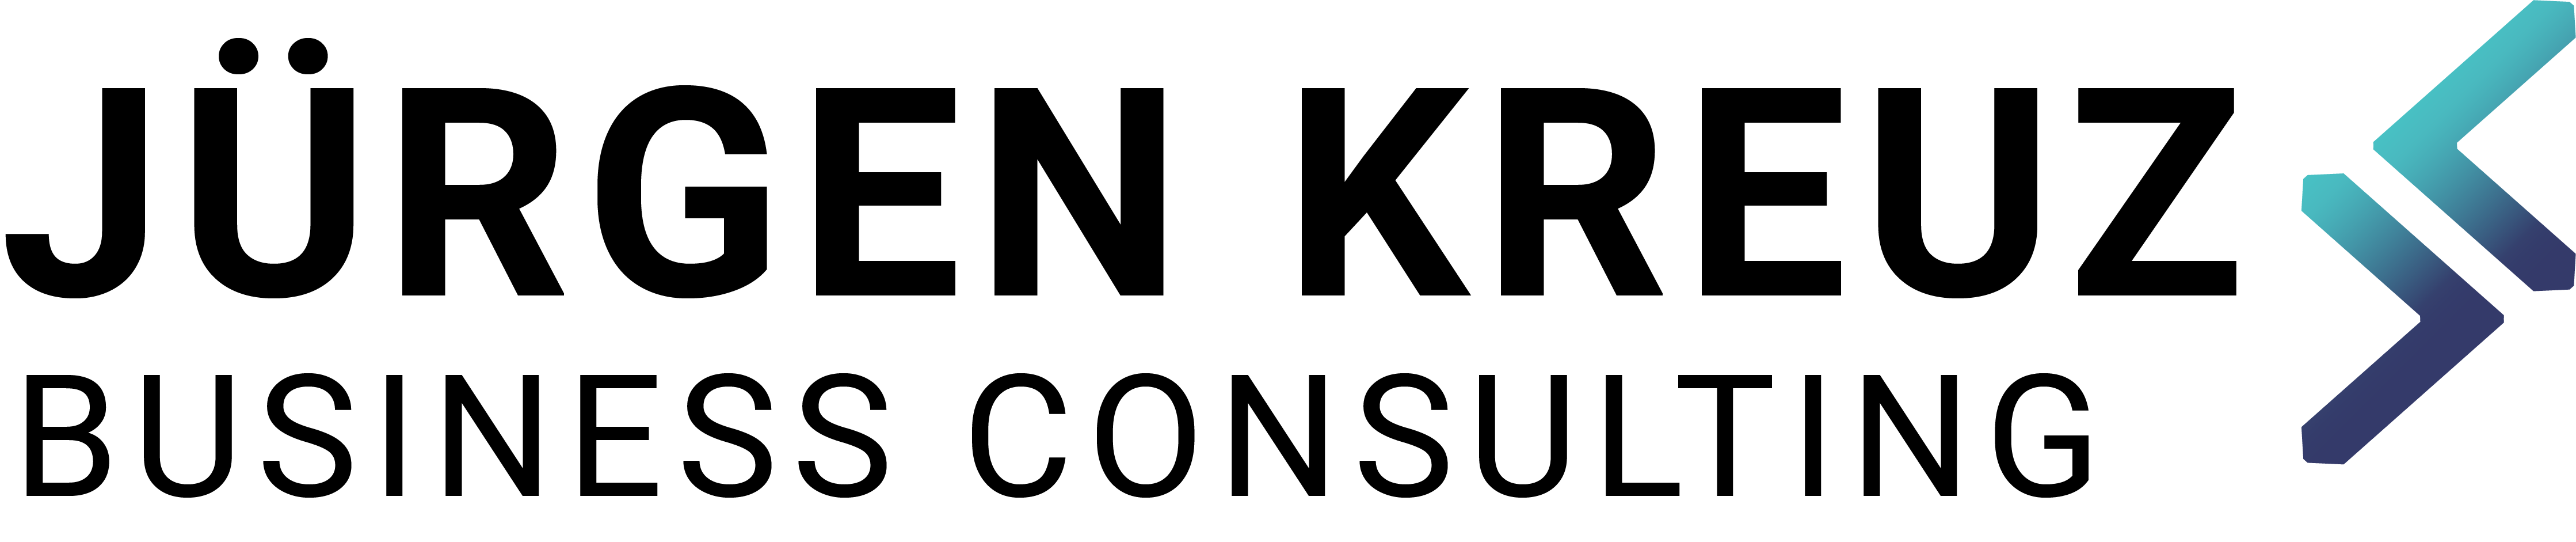 Jürgen Kreuz Business Consulting